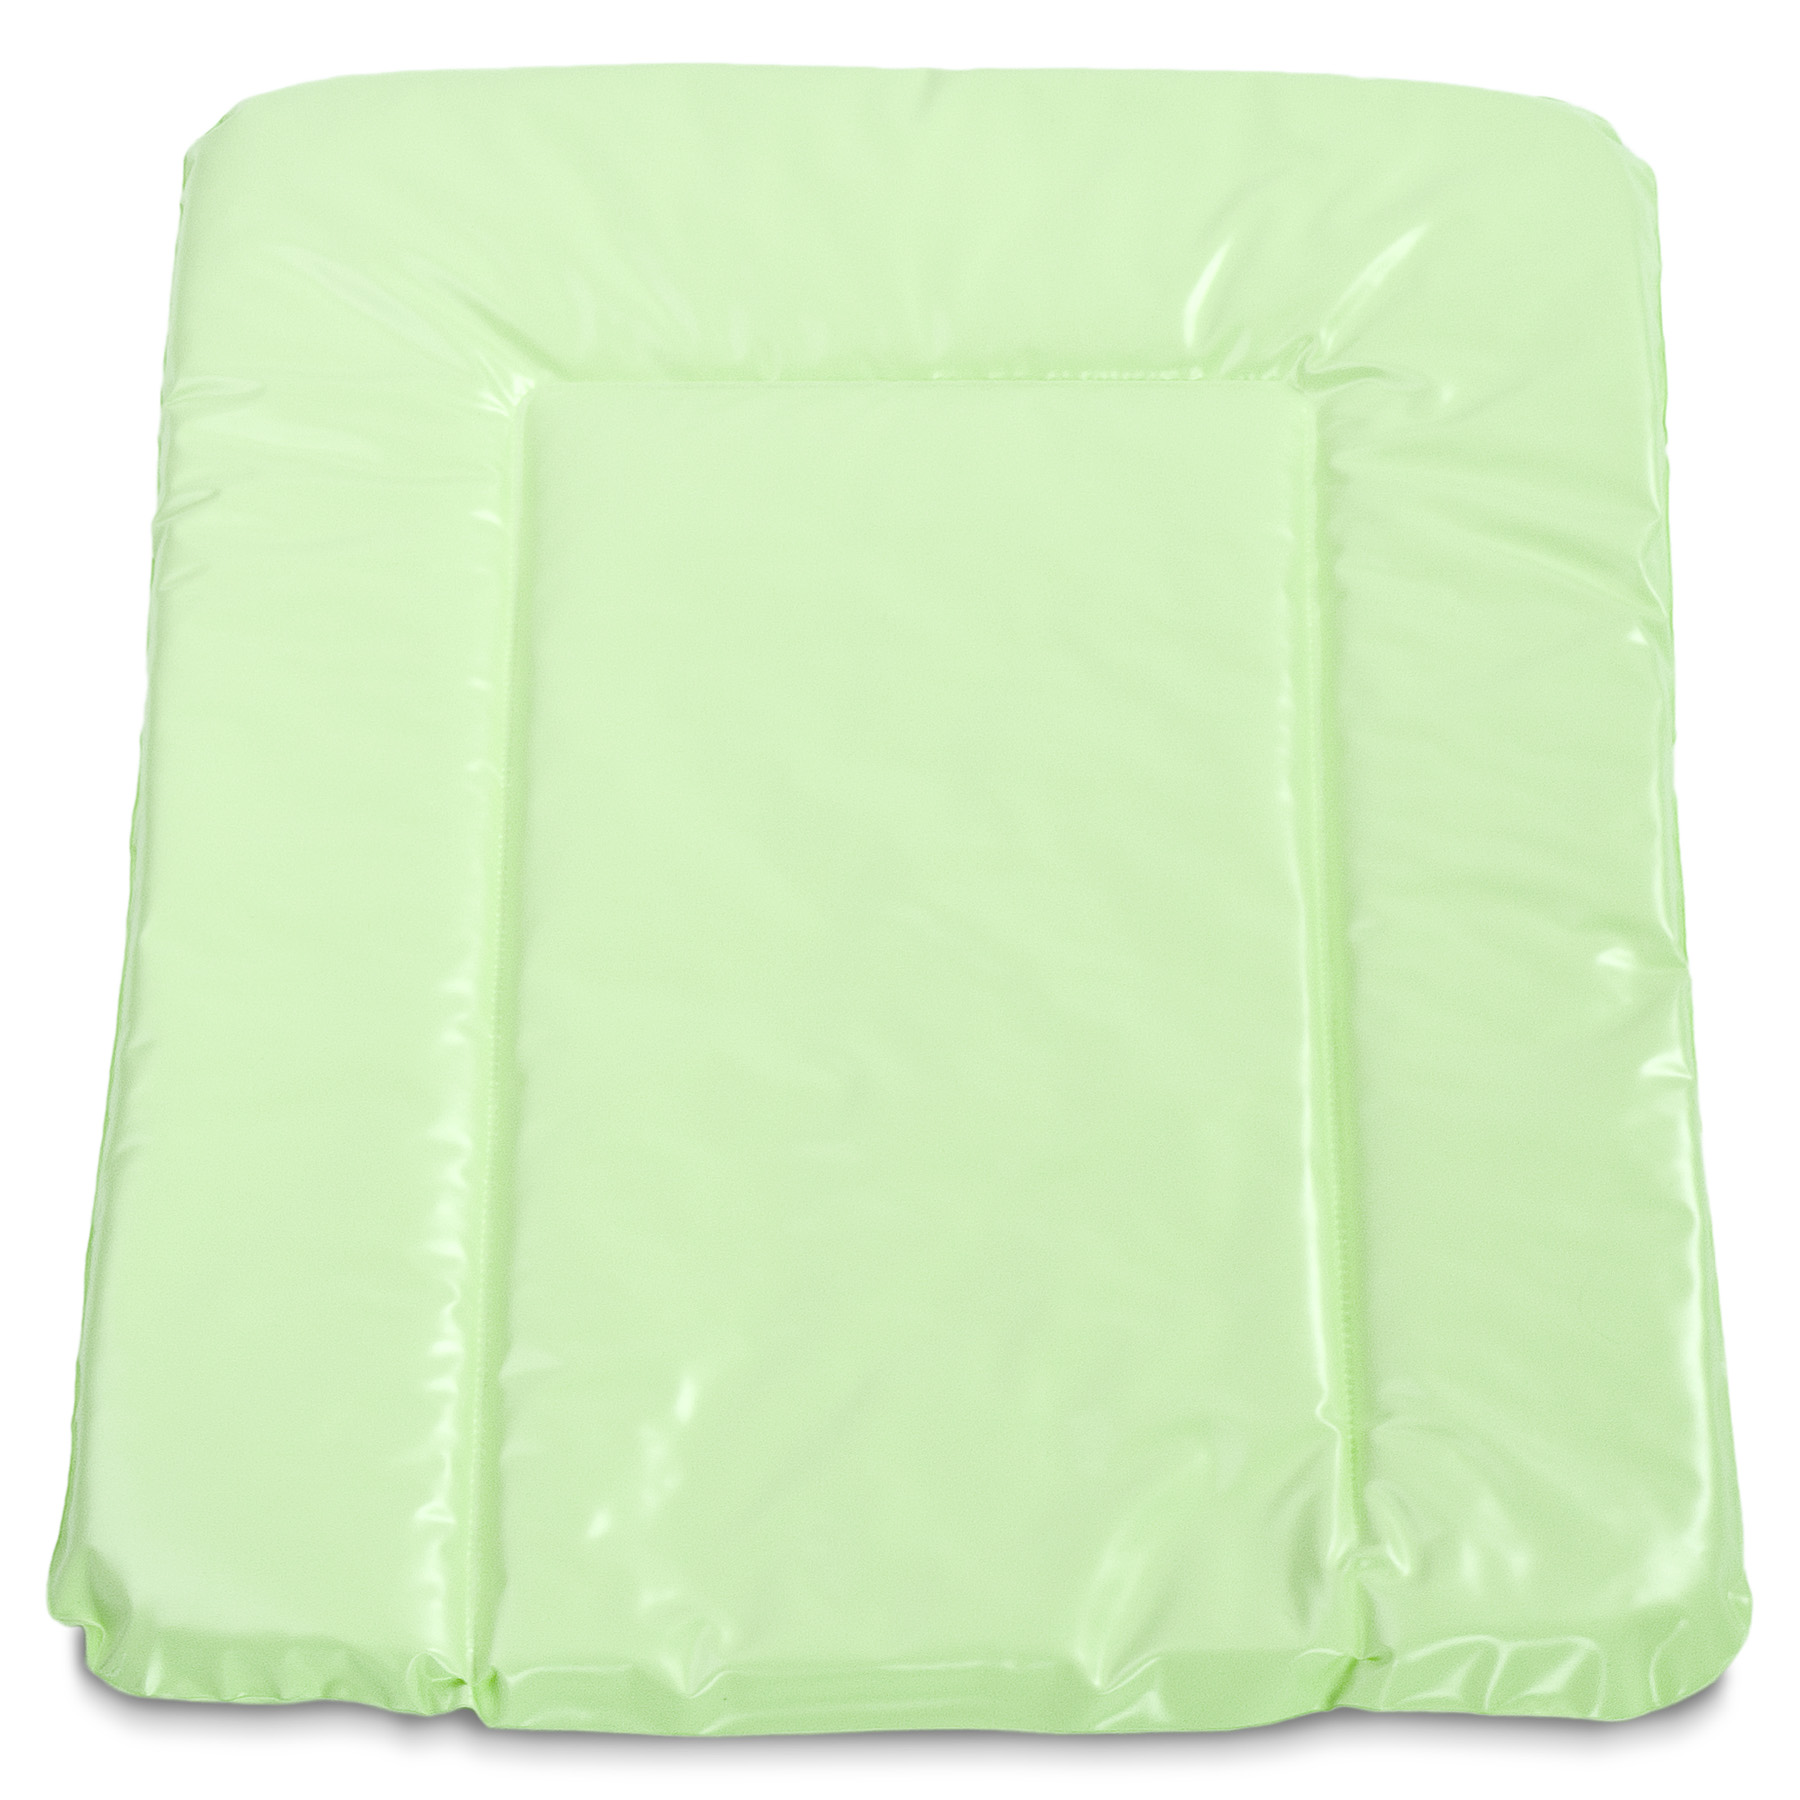 Padding/Changing mat – green